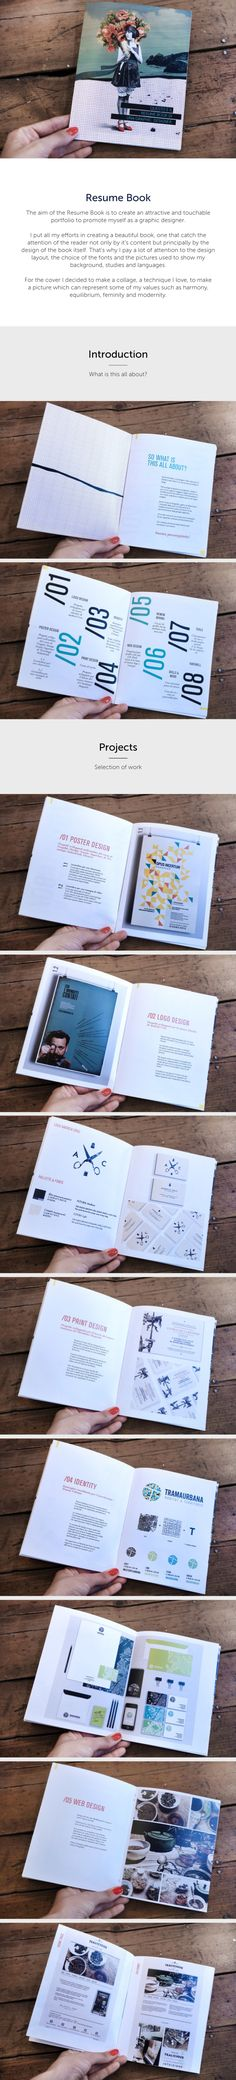 Aimee Pass (aimeepass) on Pinterest - resume book